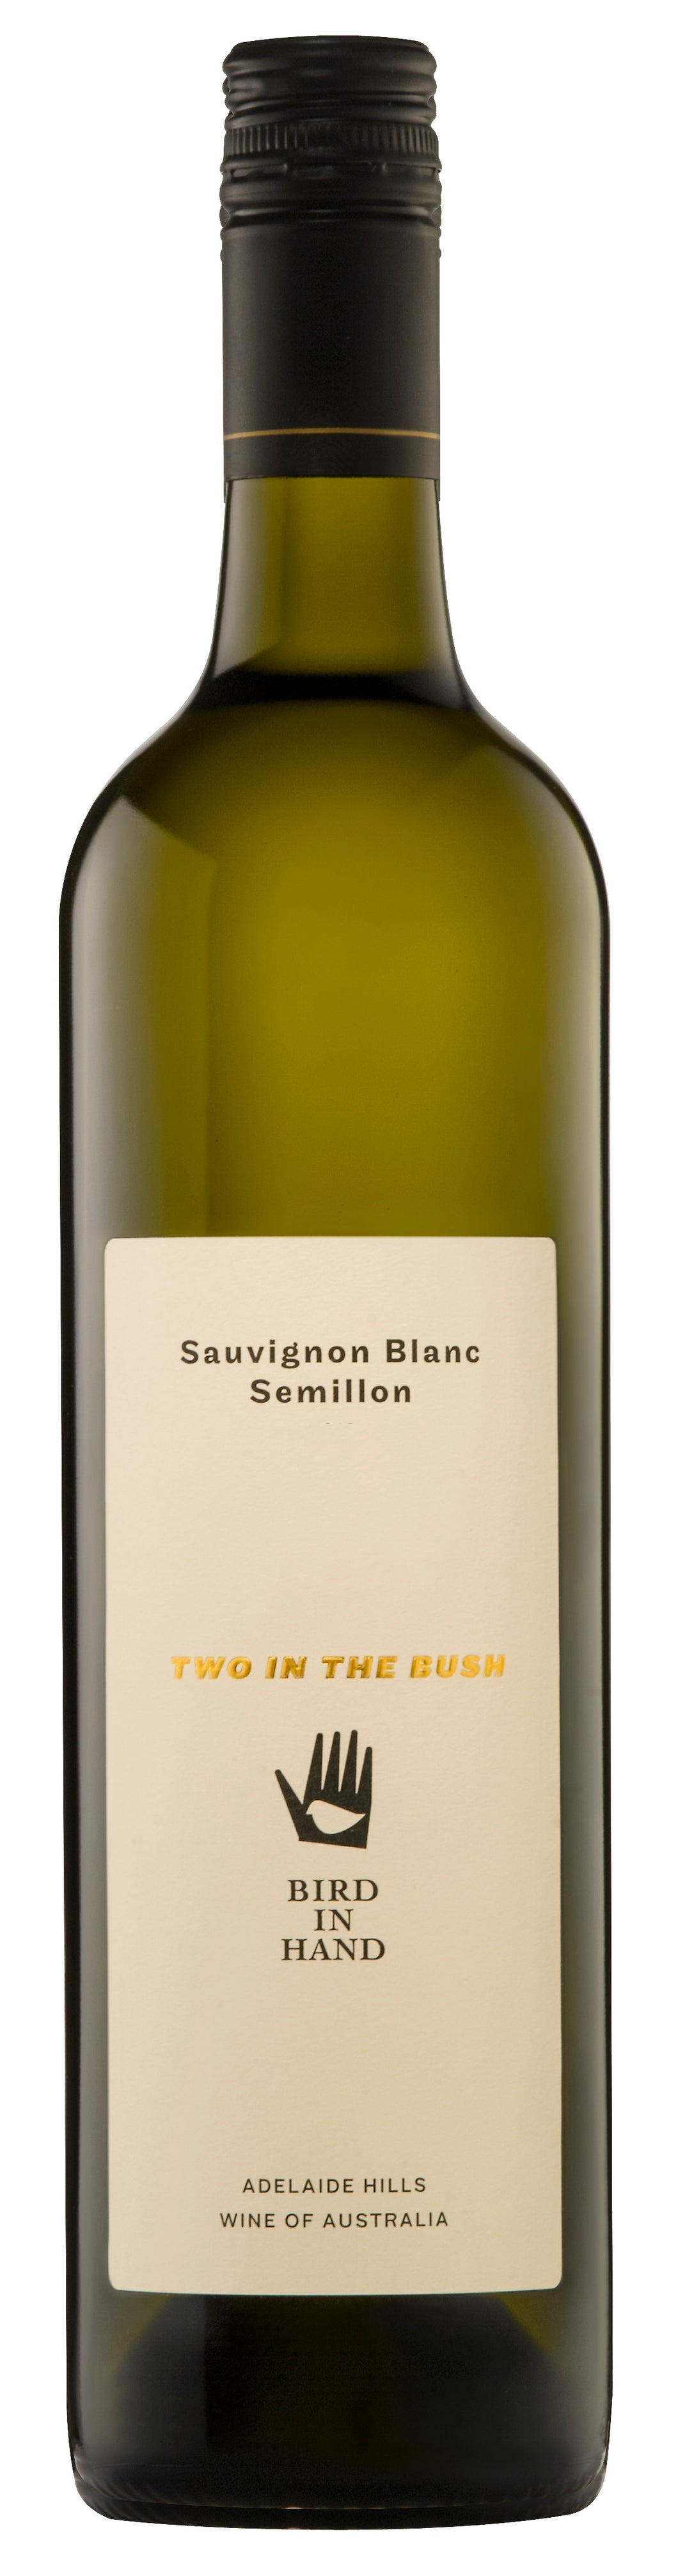 Two in the Bush Semillon Sauvignon Blanc 2020